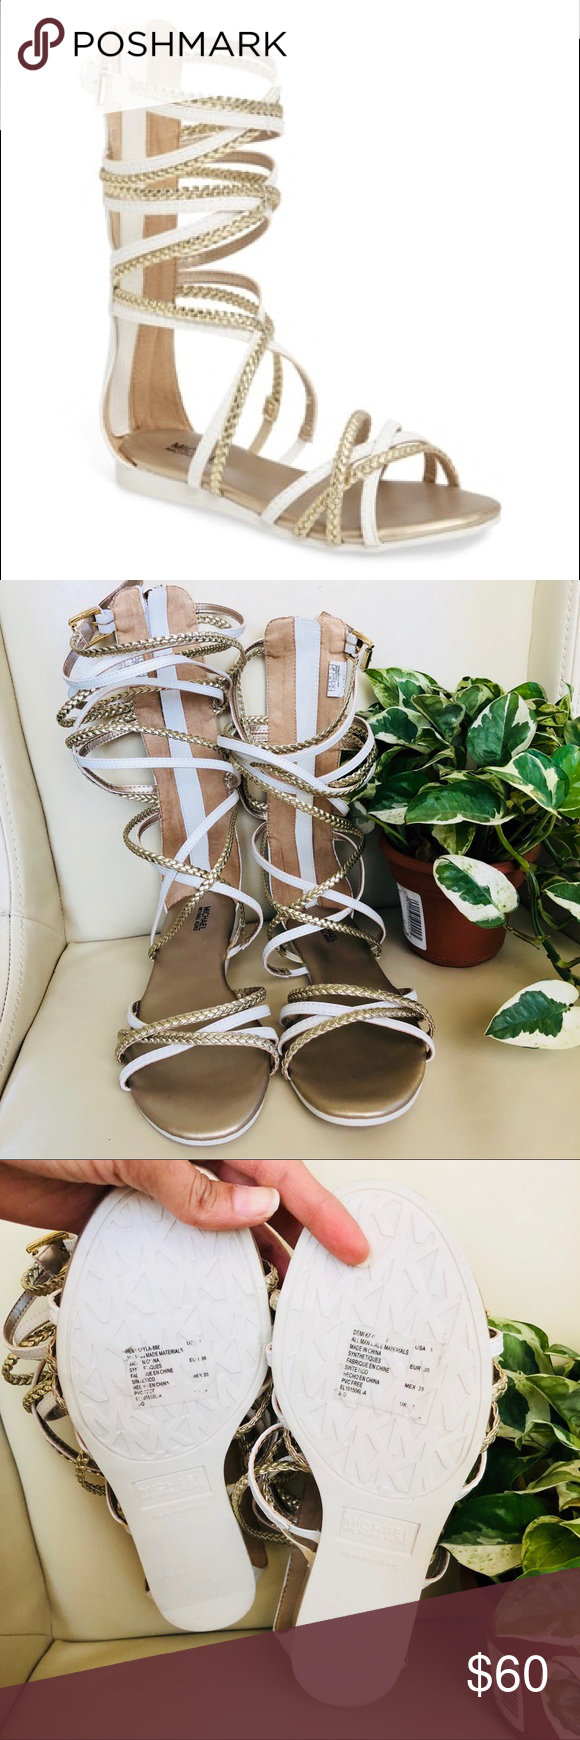 50bd554ff2 MichaelKors girls gold and white gladiator sandals Price firm New sandals  never used Michael Kors Shoes Sandals & Flip Flops